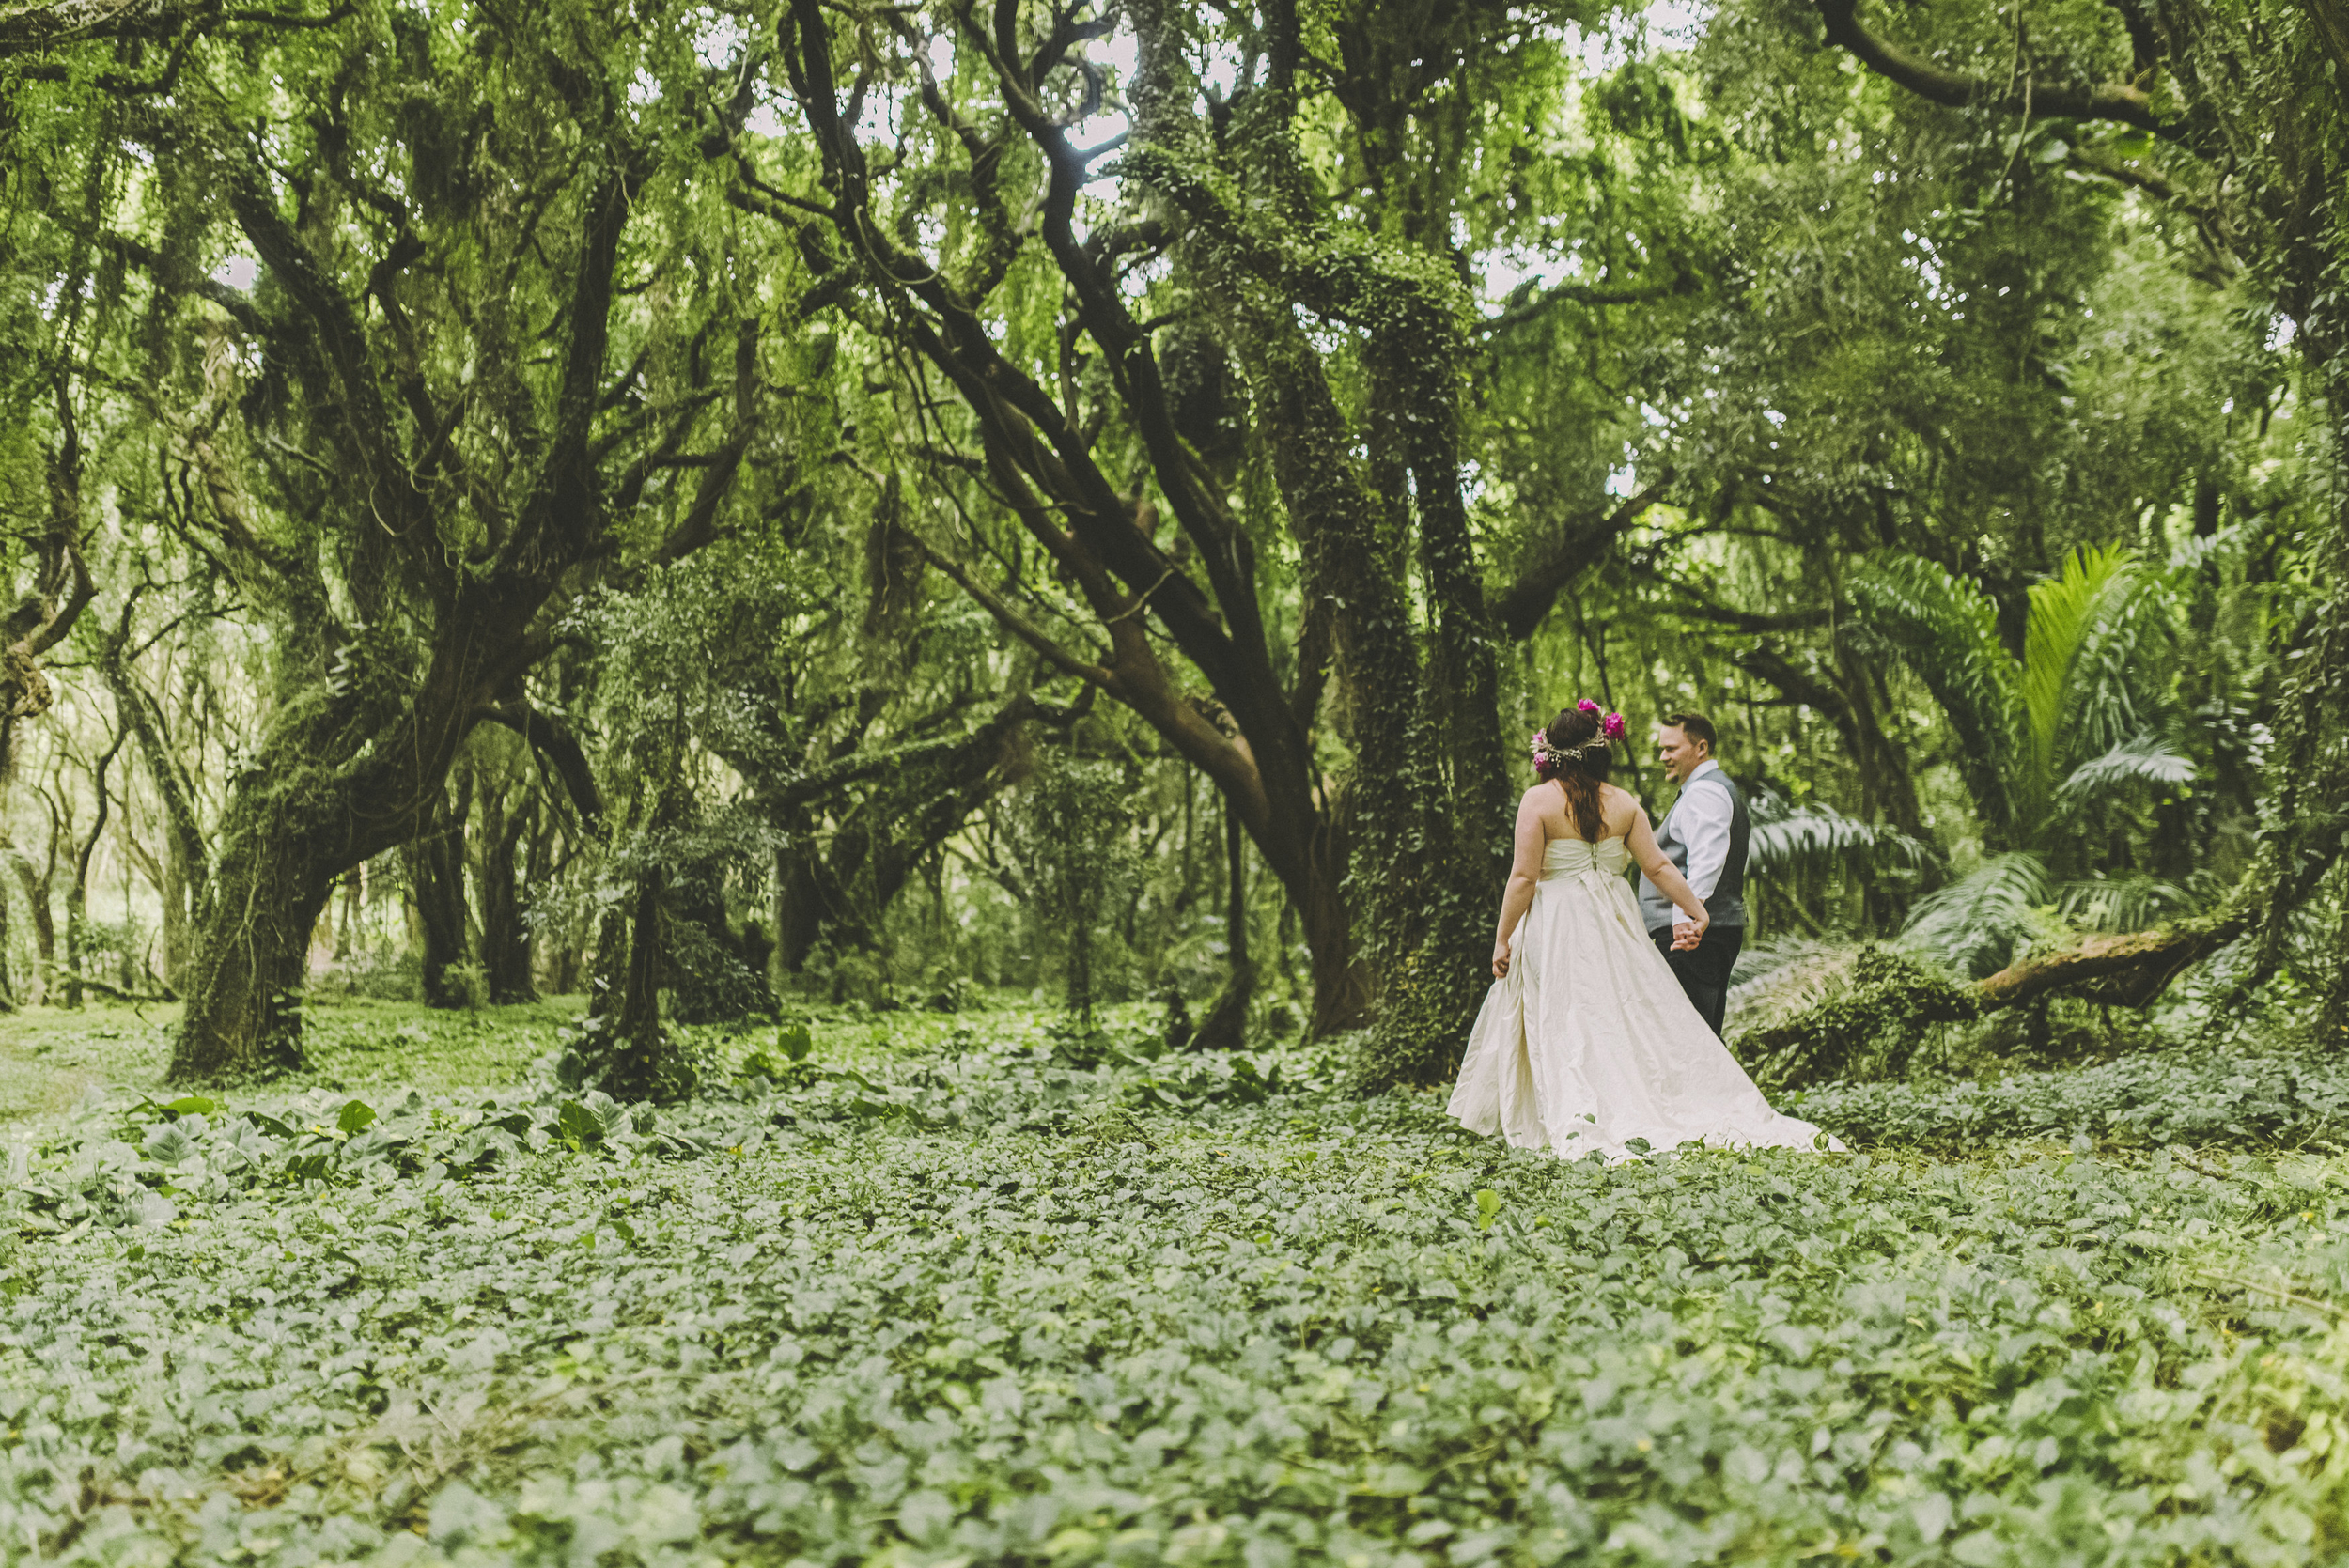 angie-diaz-photography-maui-elopement-88.jpg